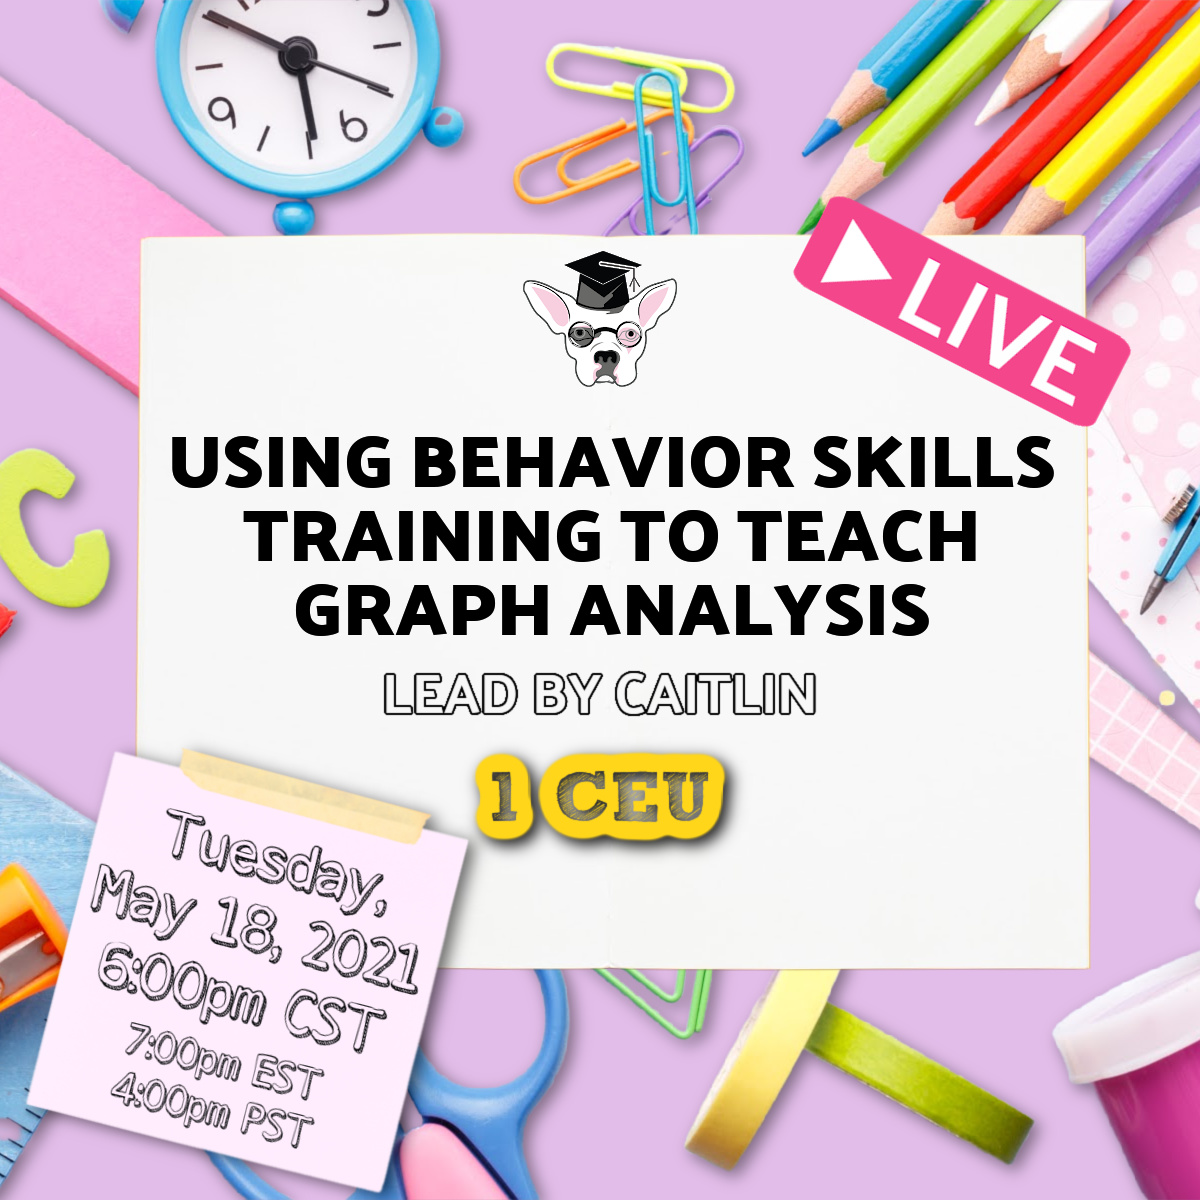 Using BST for graph analysis live